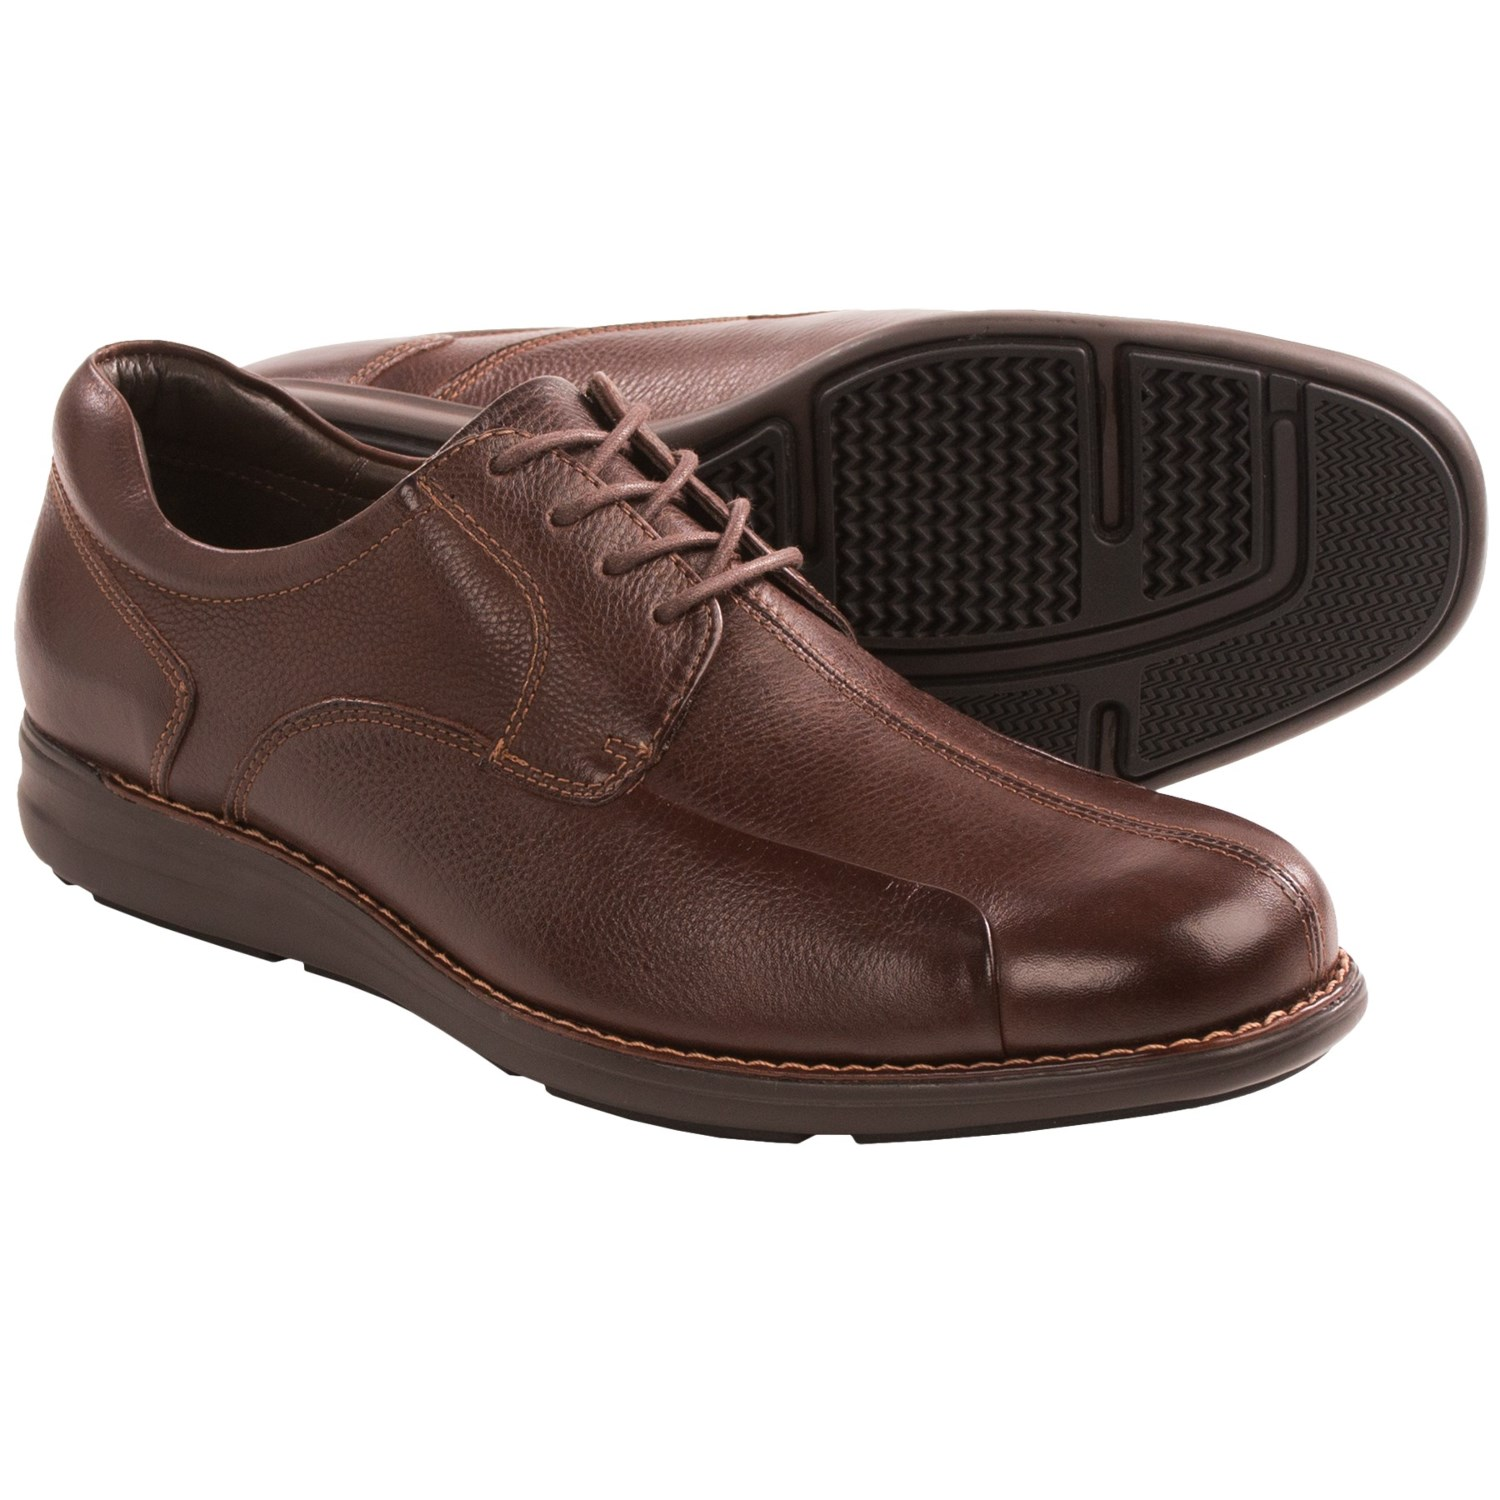 Bike Oxfords Bike Shoes Oxfords